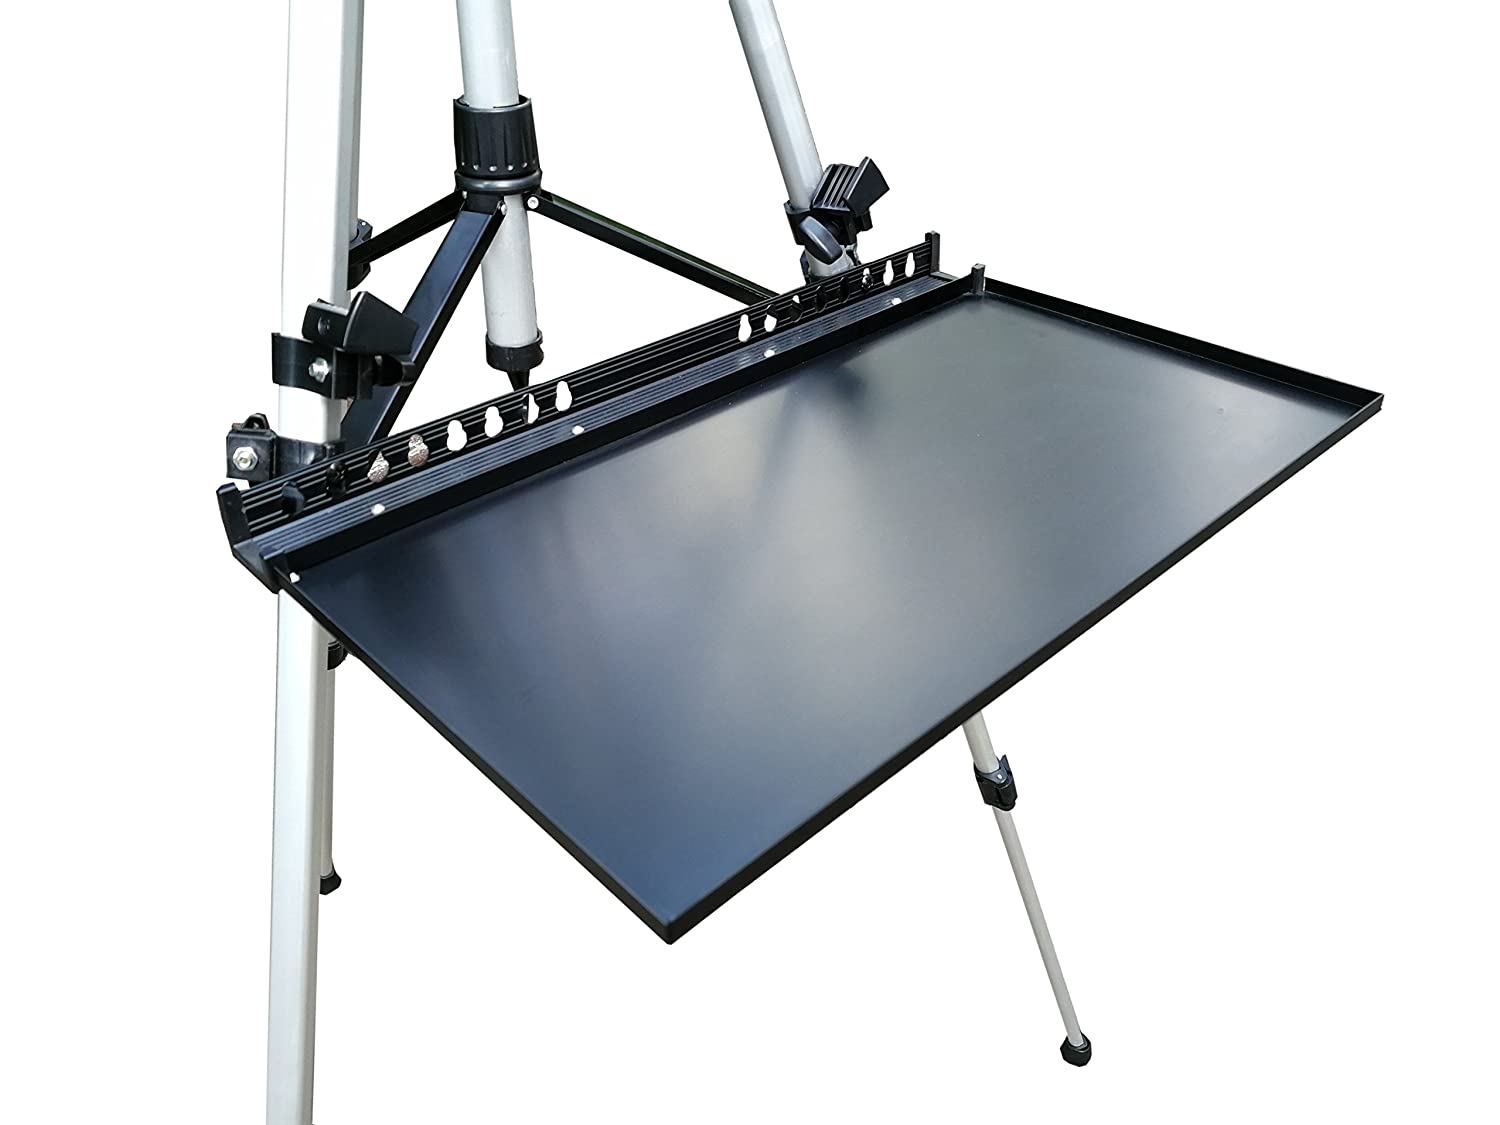 Black Tray Artist Aluminum Replacement Easel Tray Do4U Painting Easel Stand Replacement Easel Tray